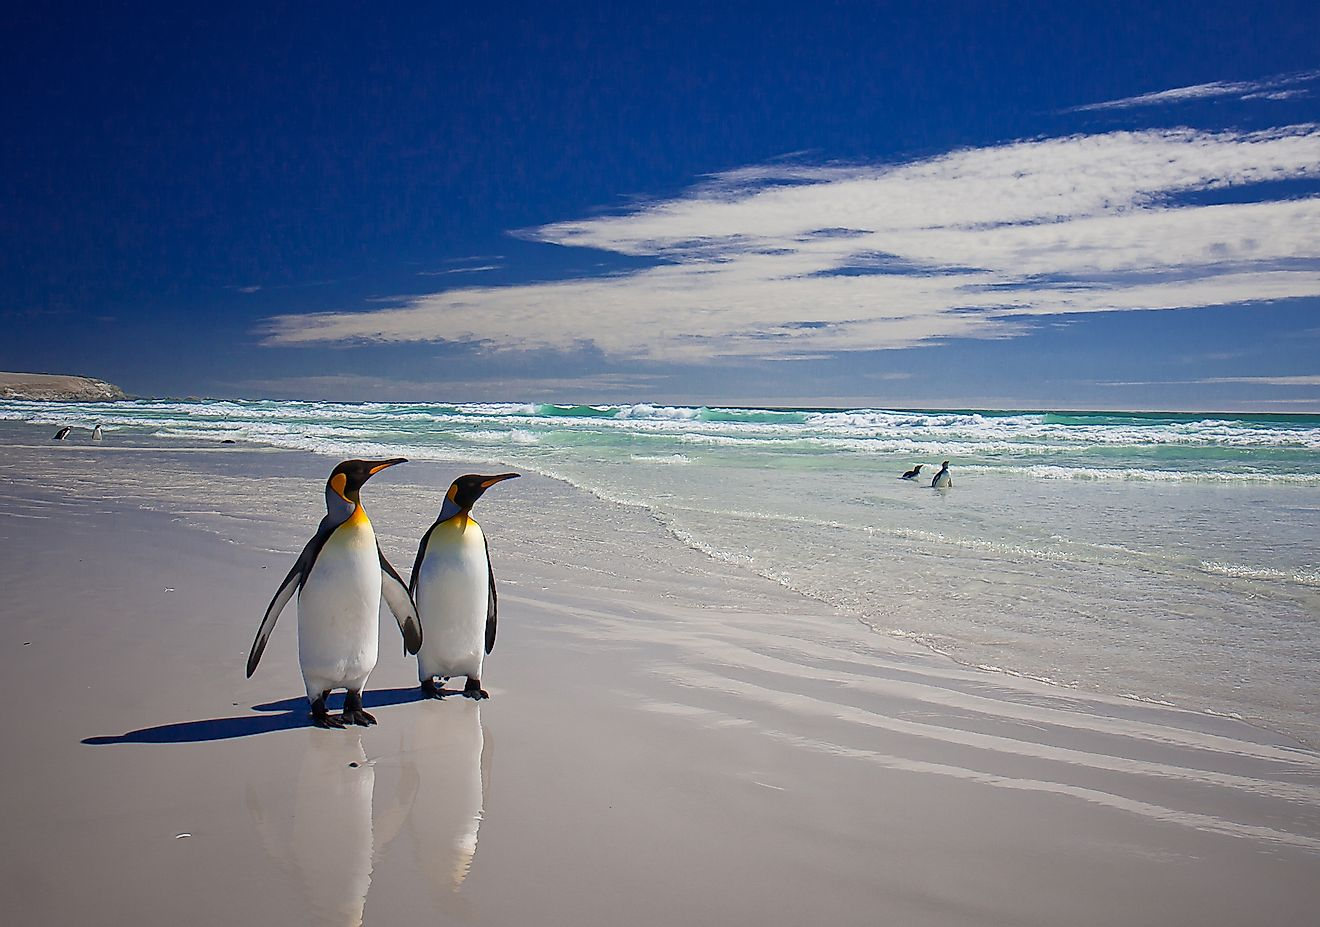 King Penguins at Volunteer Point on the Falkland Islands. Image credit: Neale Cousland/Shutterstock.com